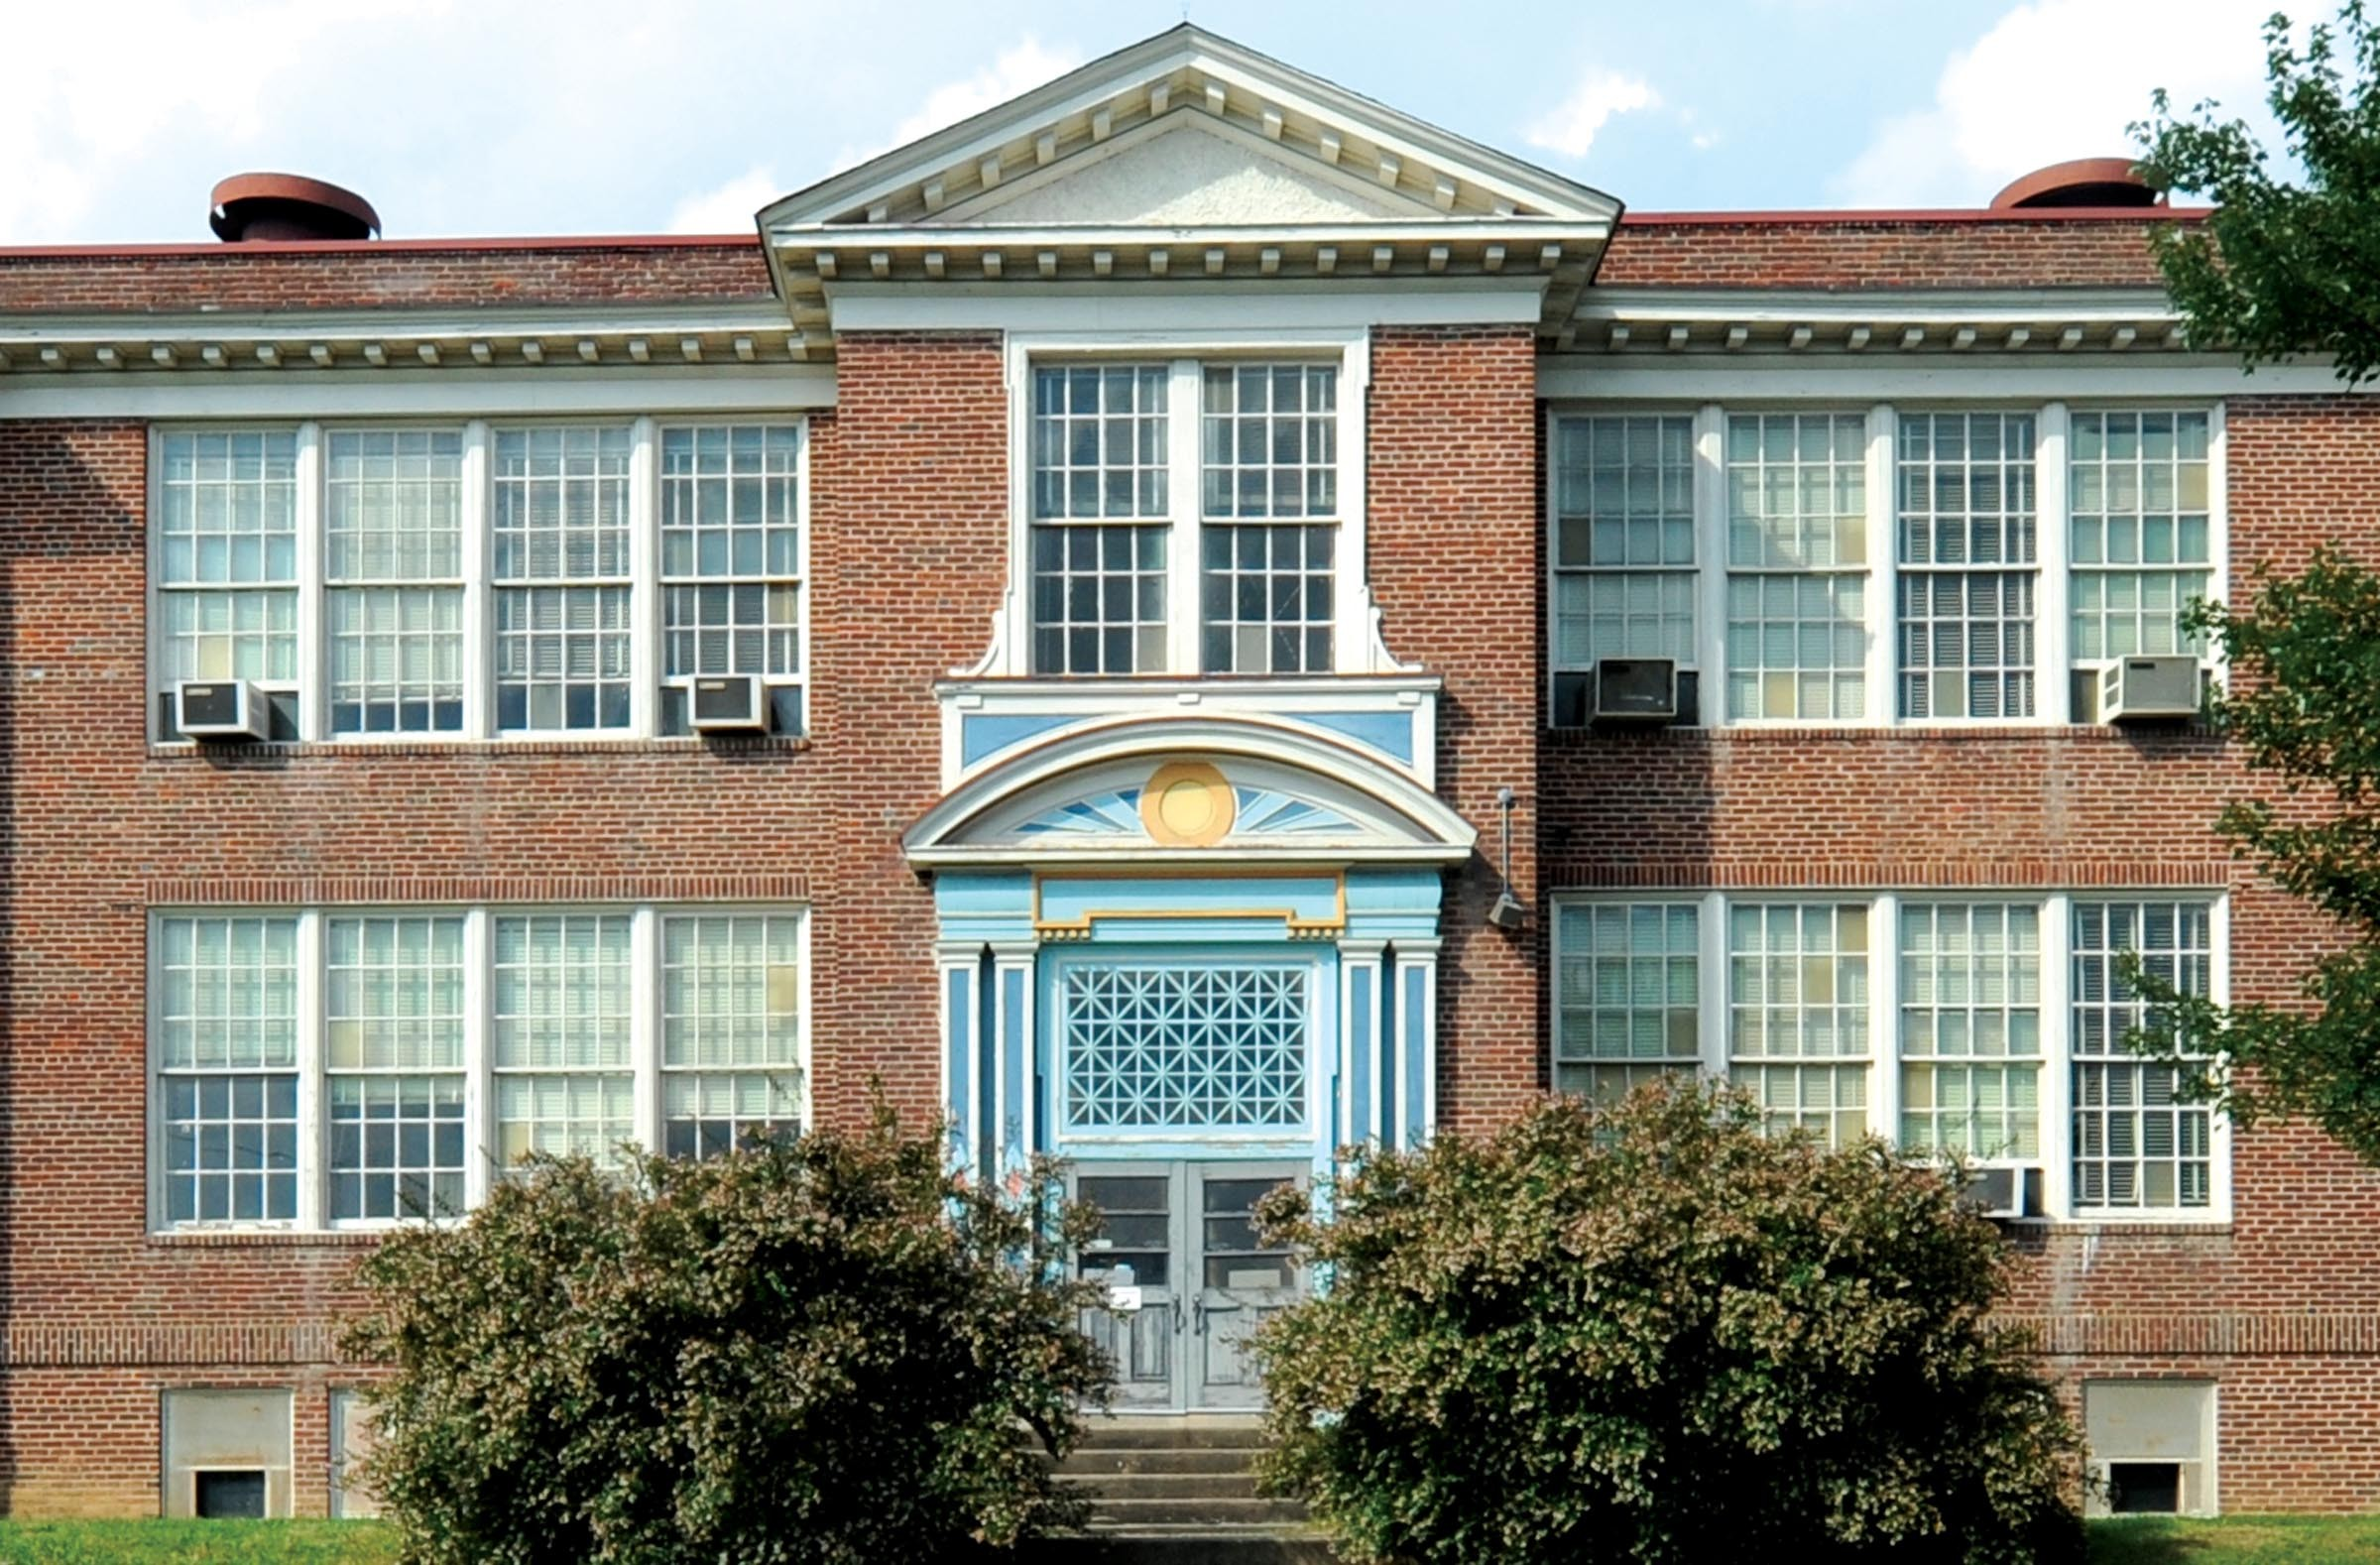 The schools original east wing, built in 1917, features a rounded pediment over its entryway. - SCOTT ELMQUIST